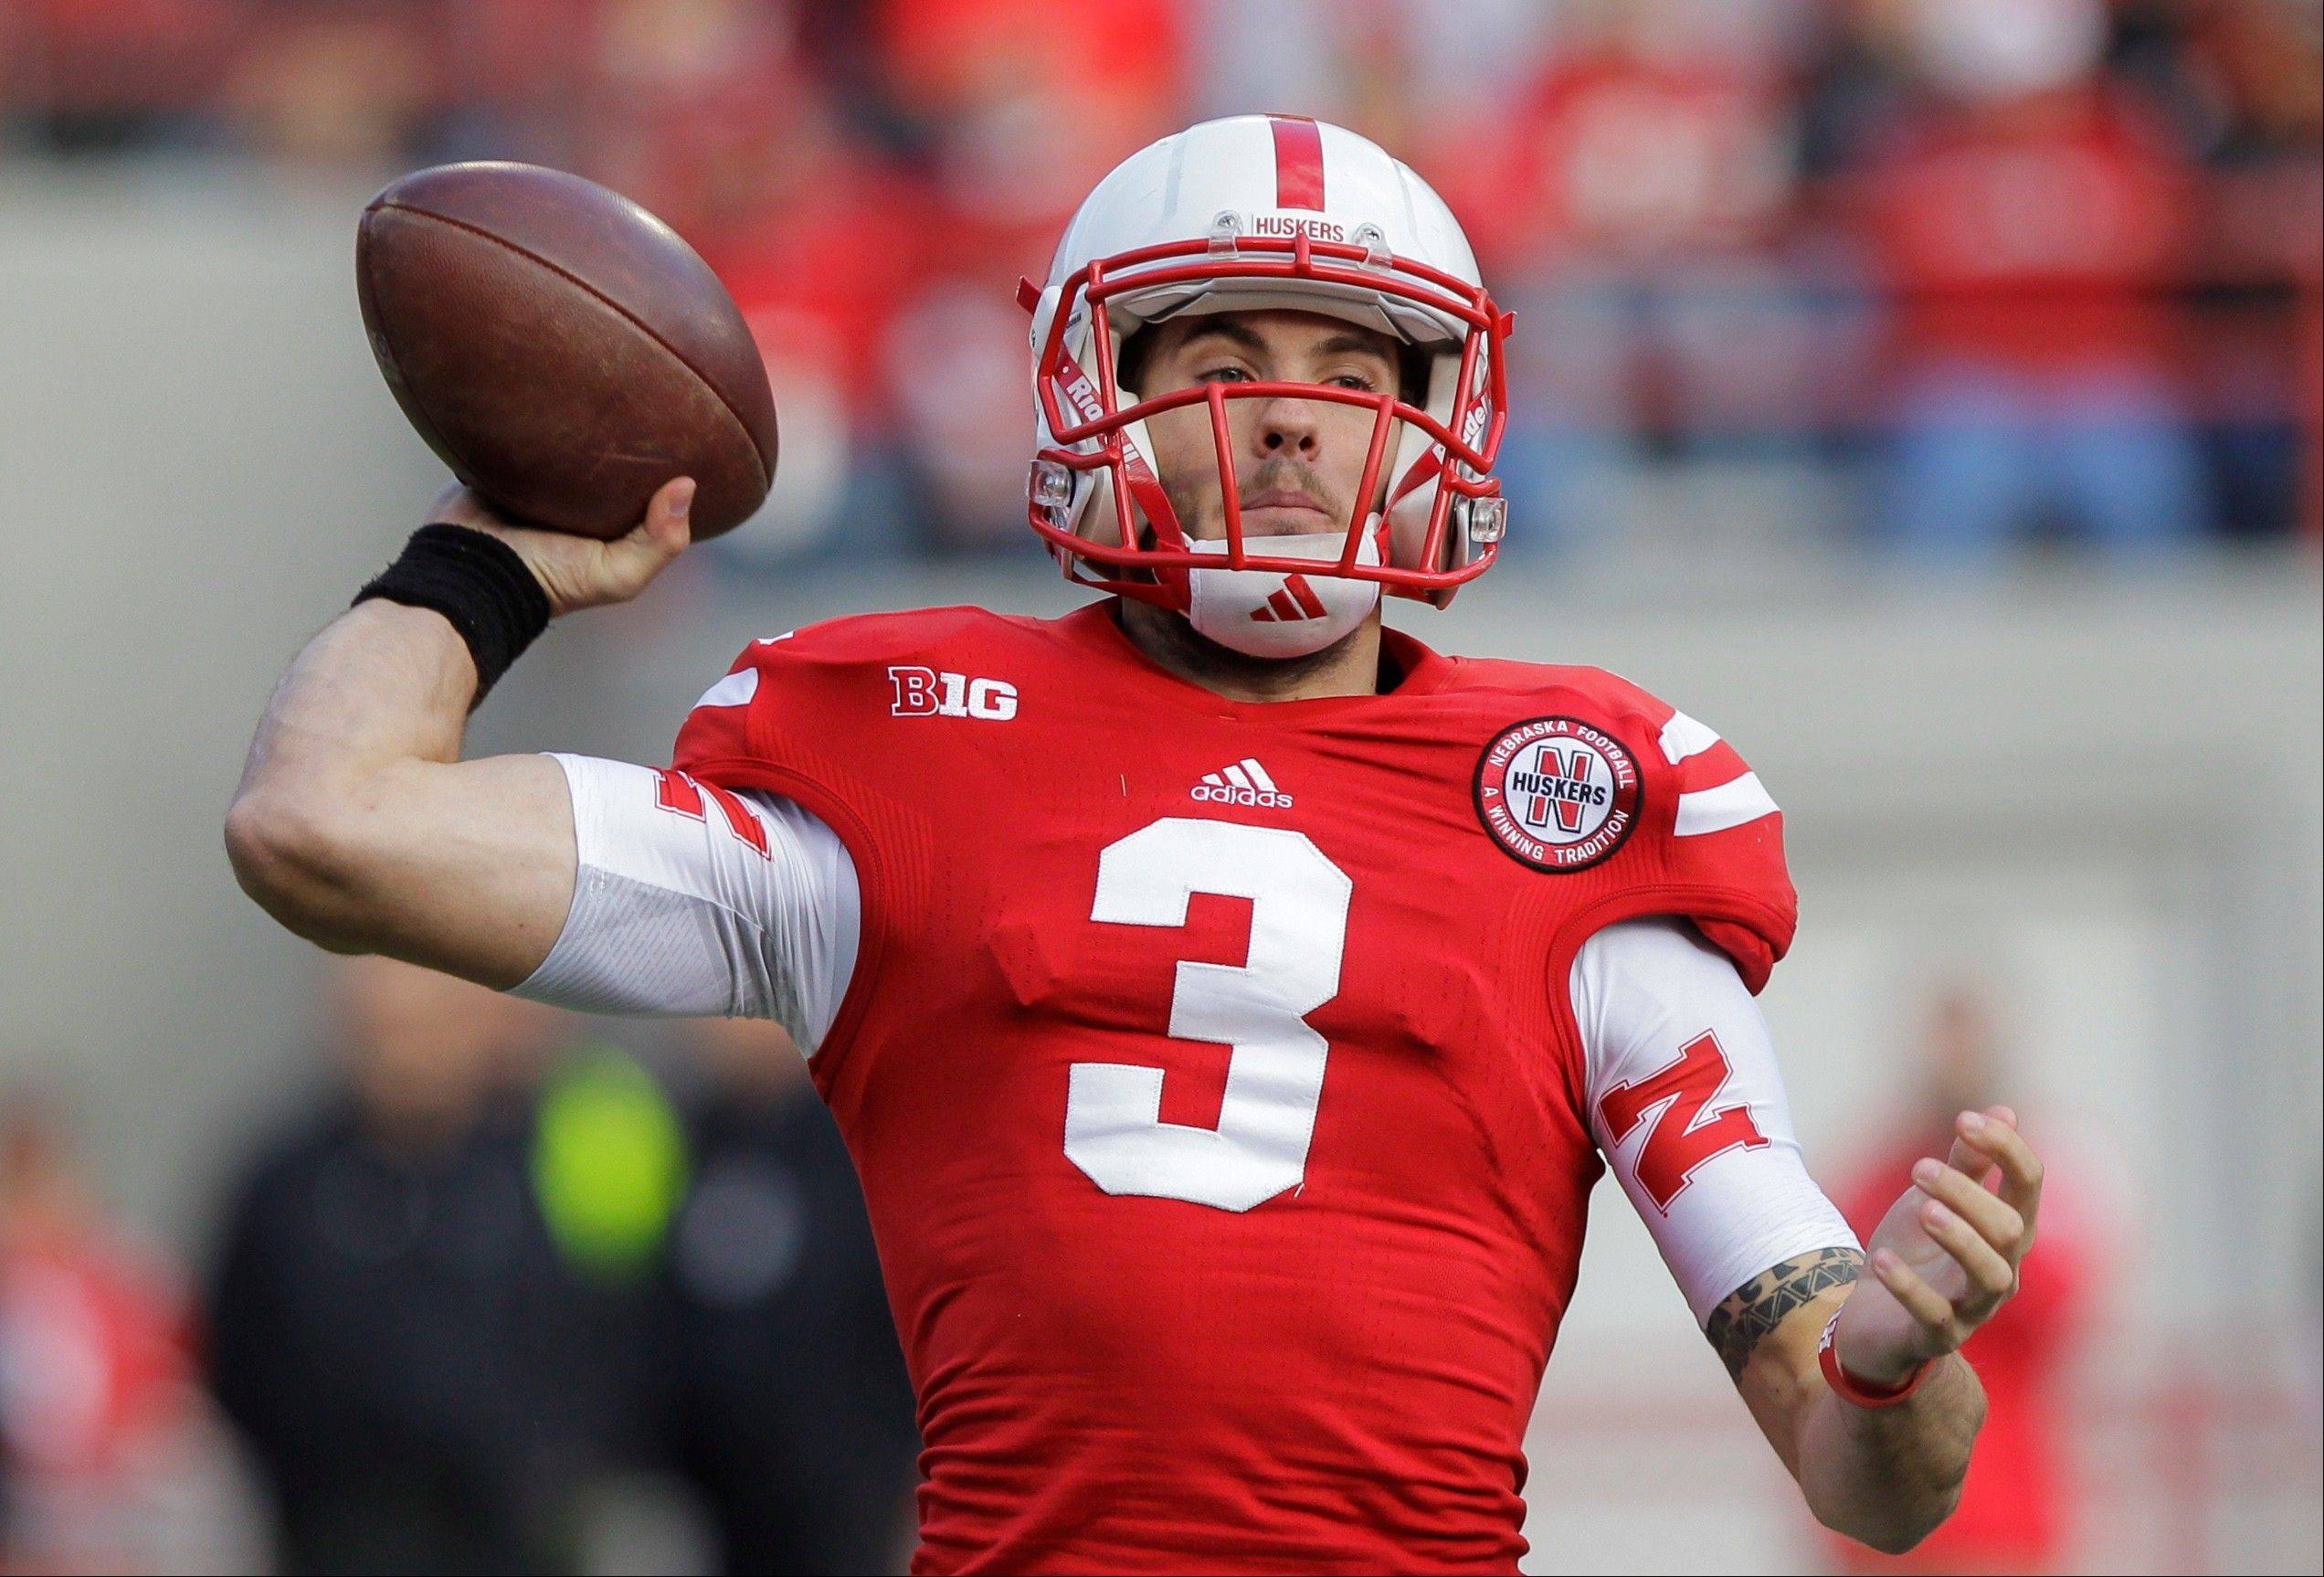 Nebraska quarterback Taylor Martinez has been limited to four games this season.